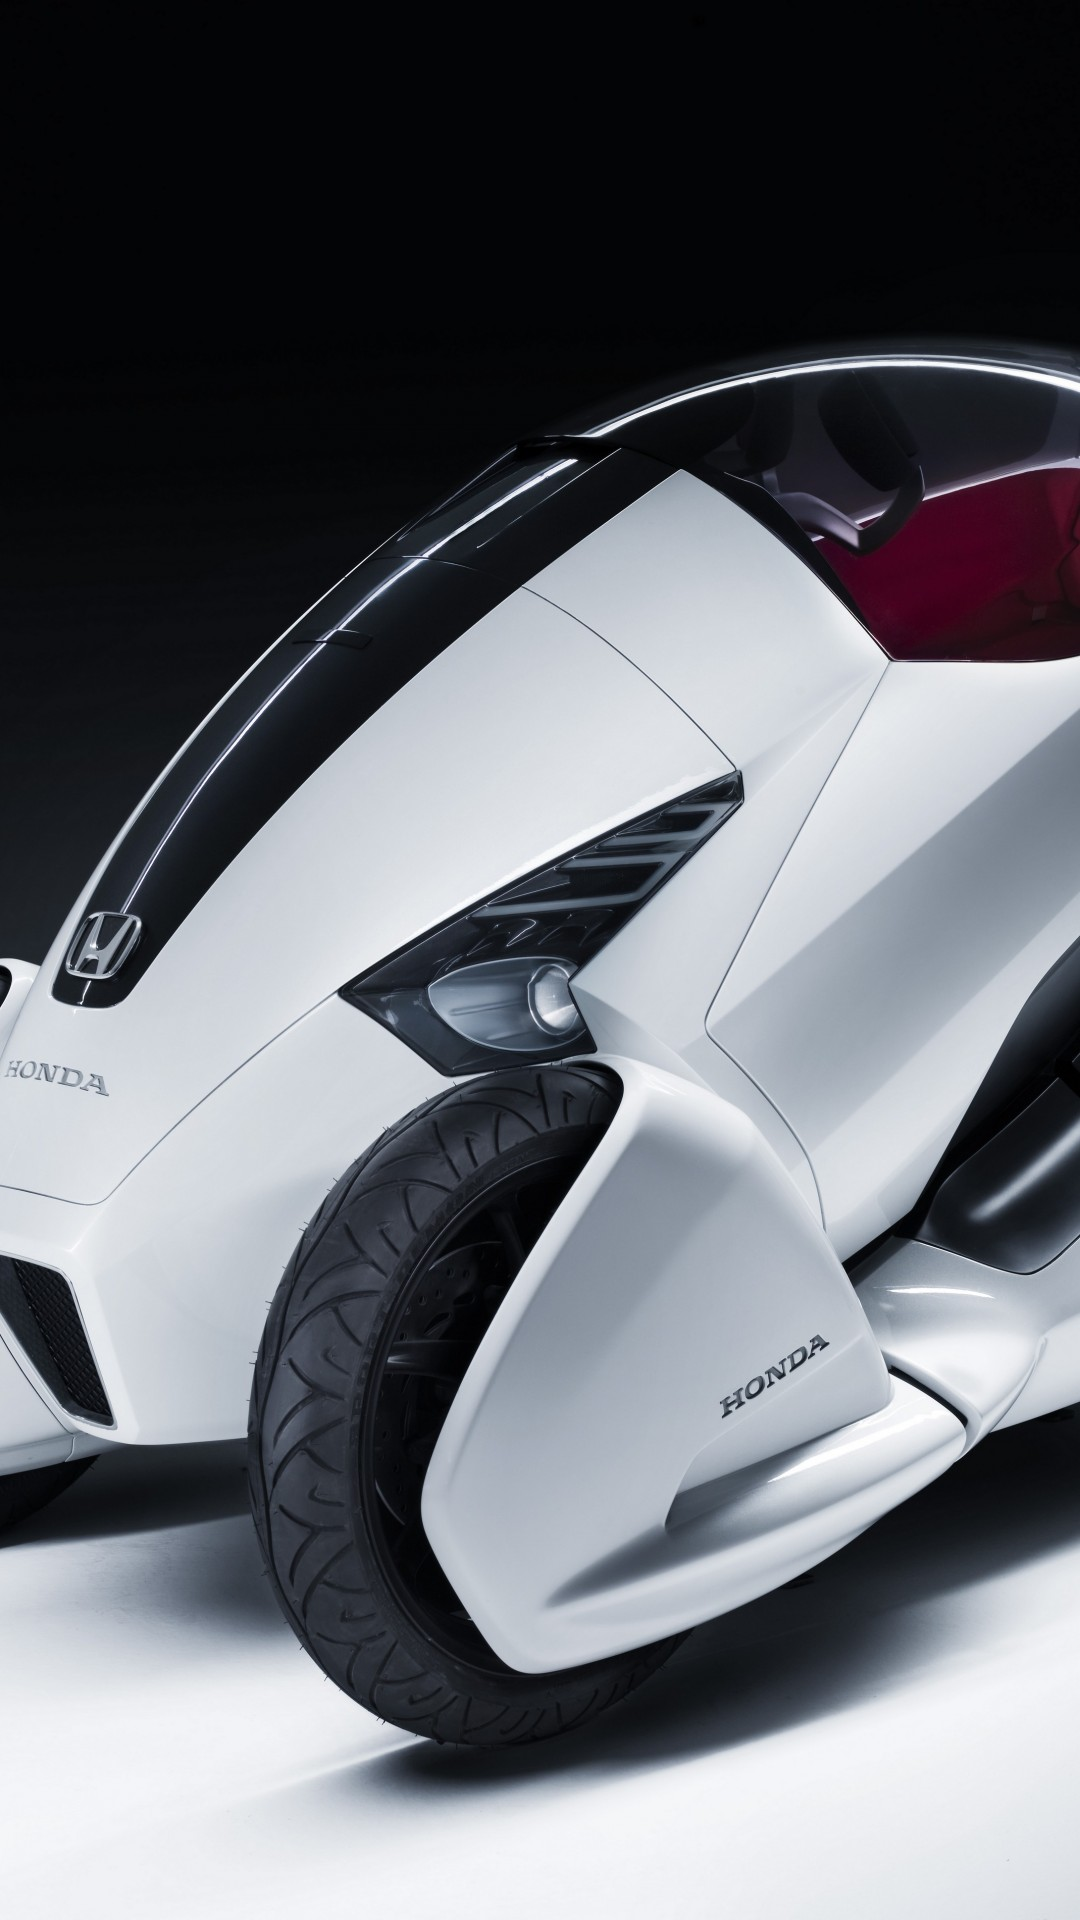 Wallpaper Honda 3r C Concept Honda Three Wheeled